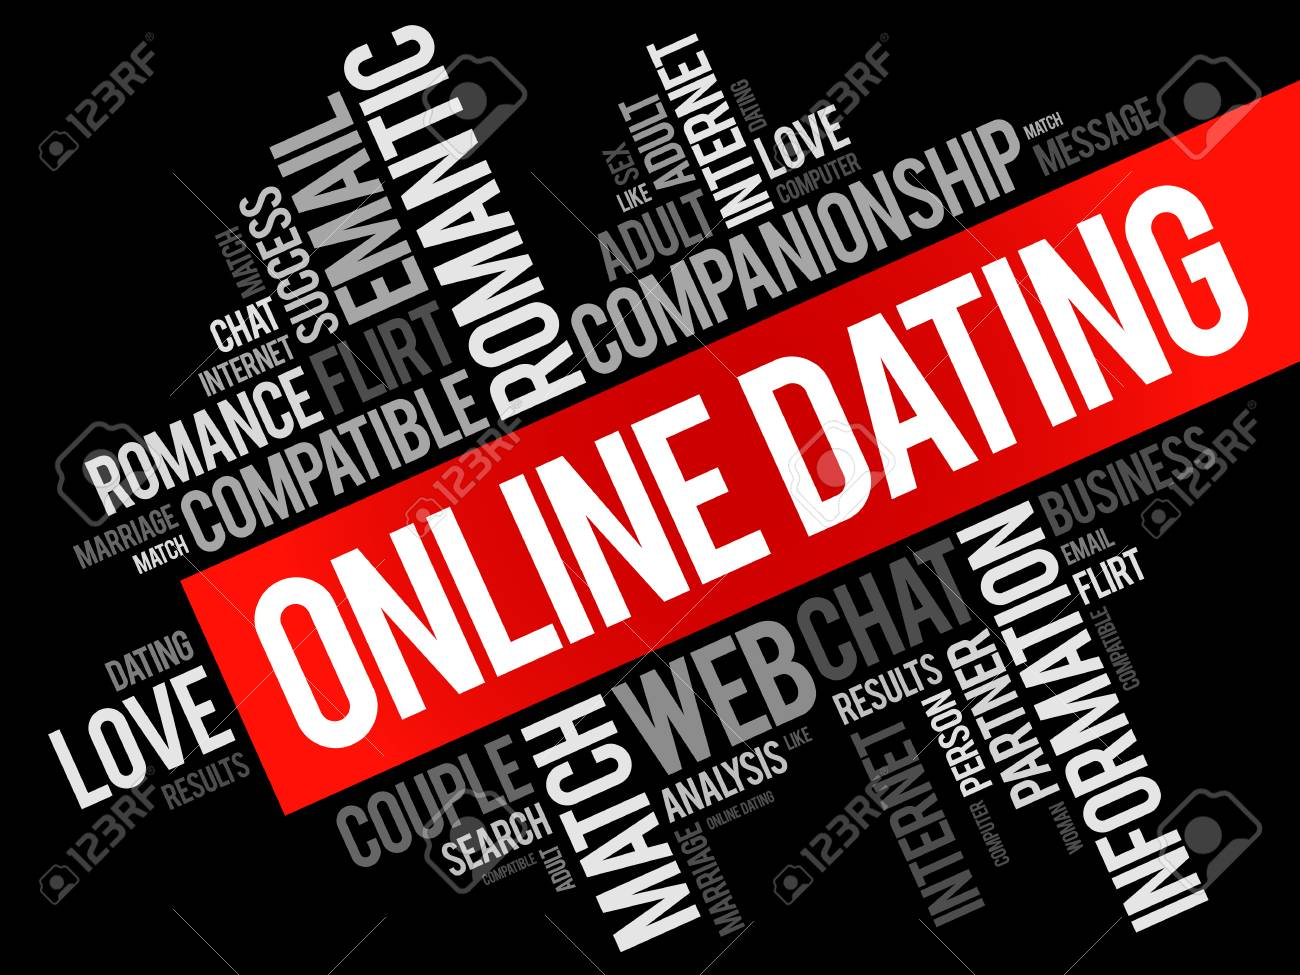 Graphoanalysis online dating